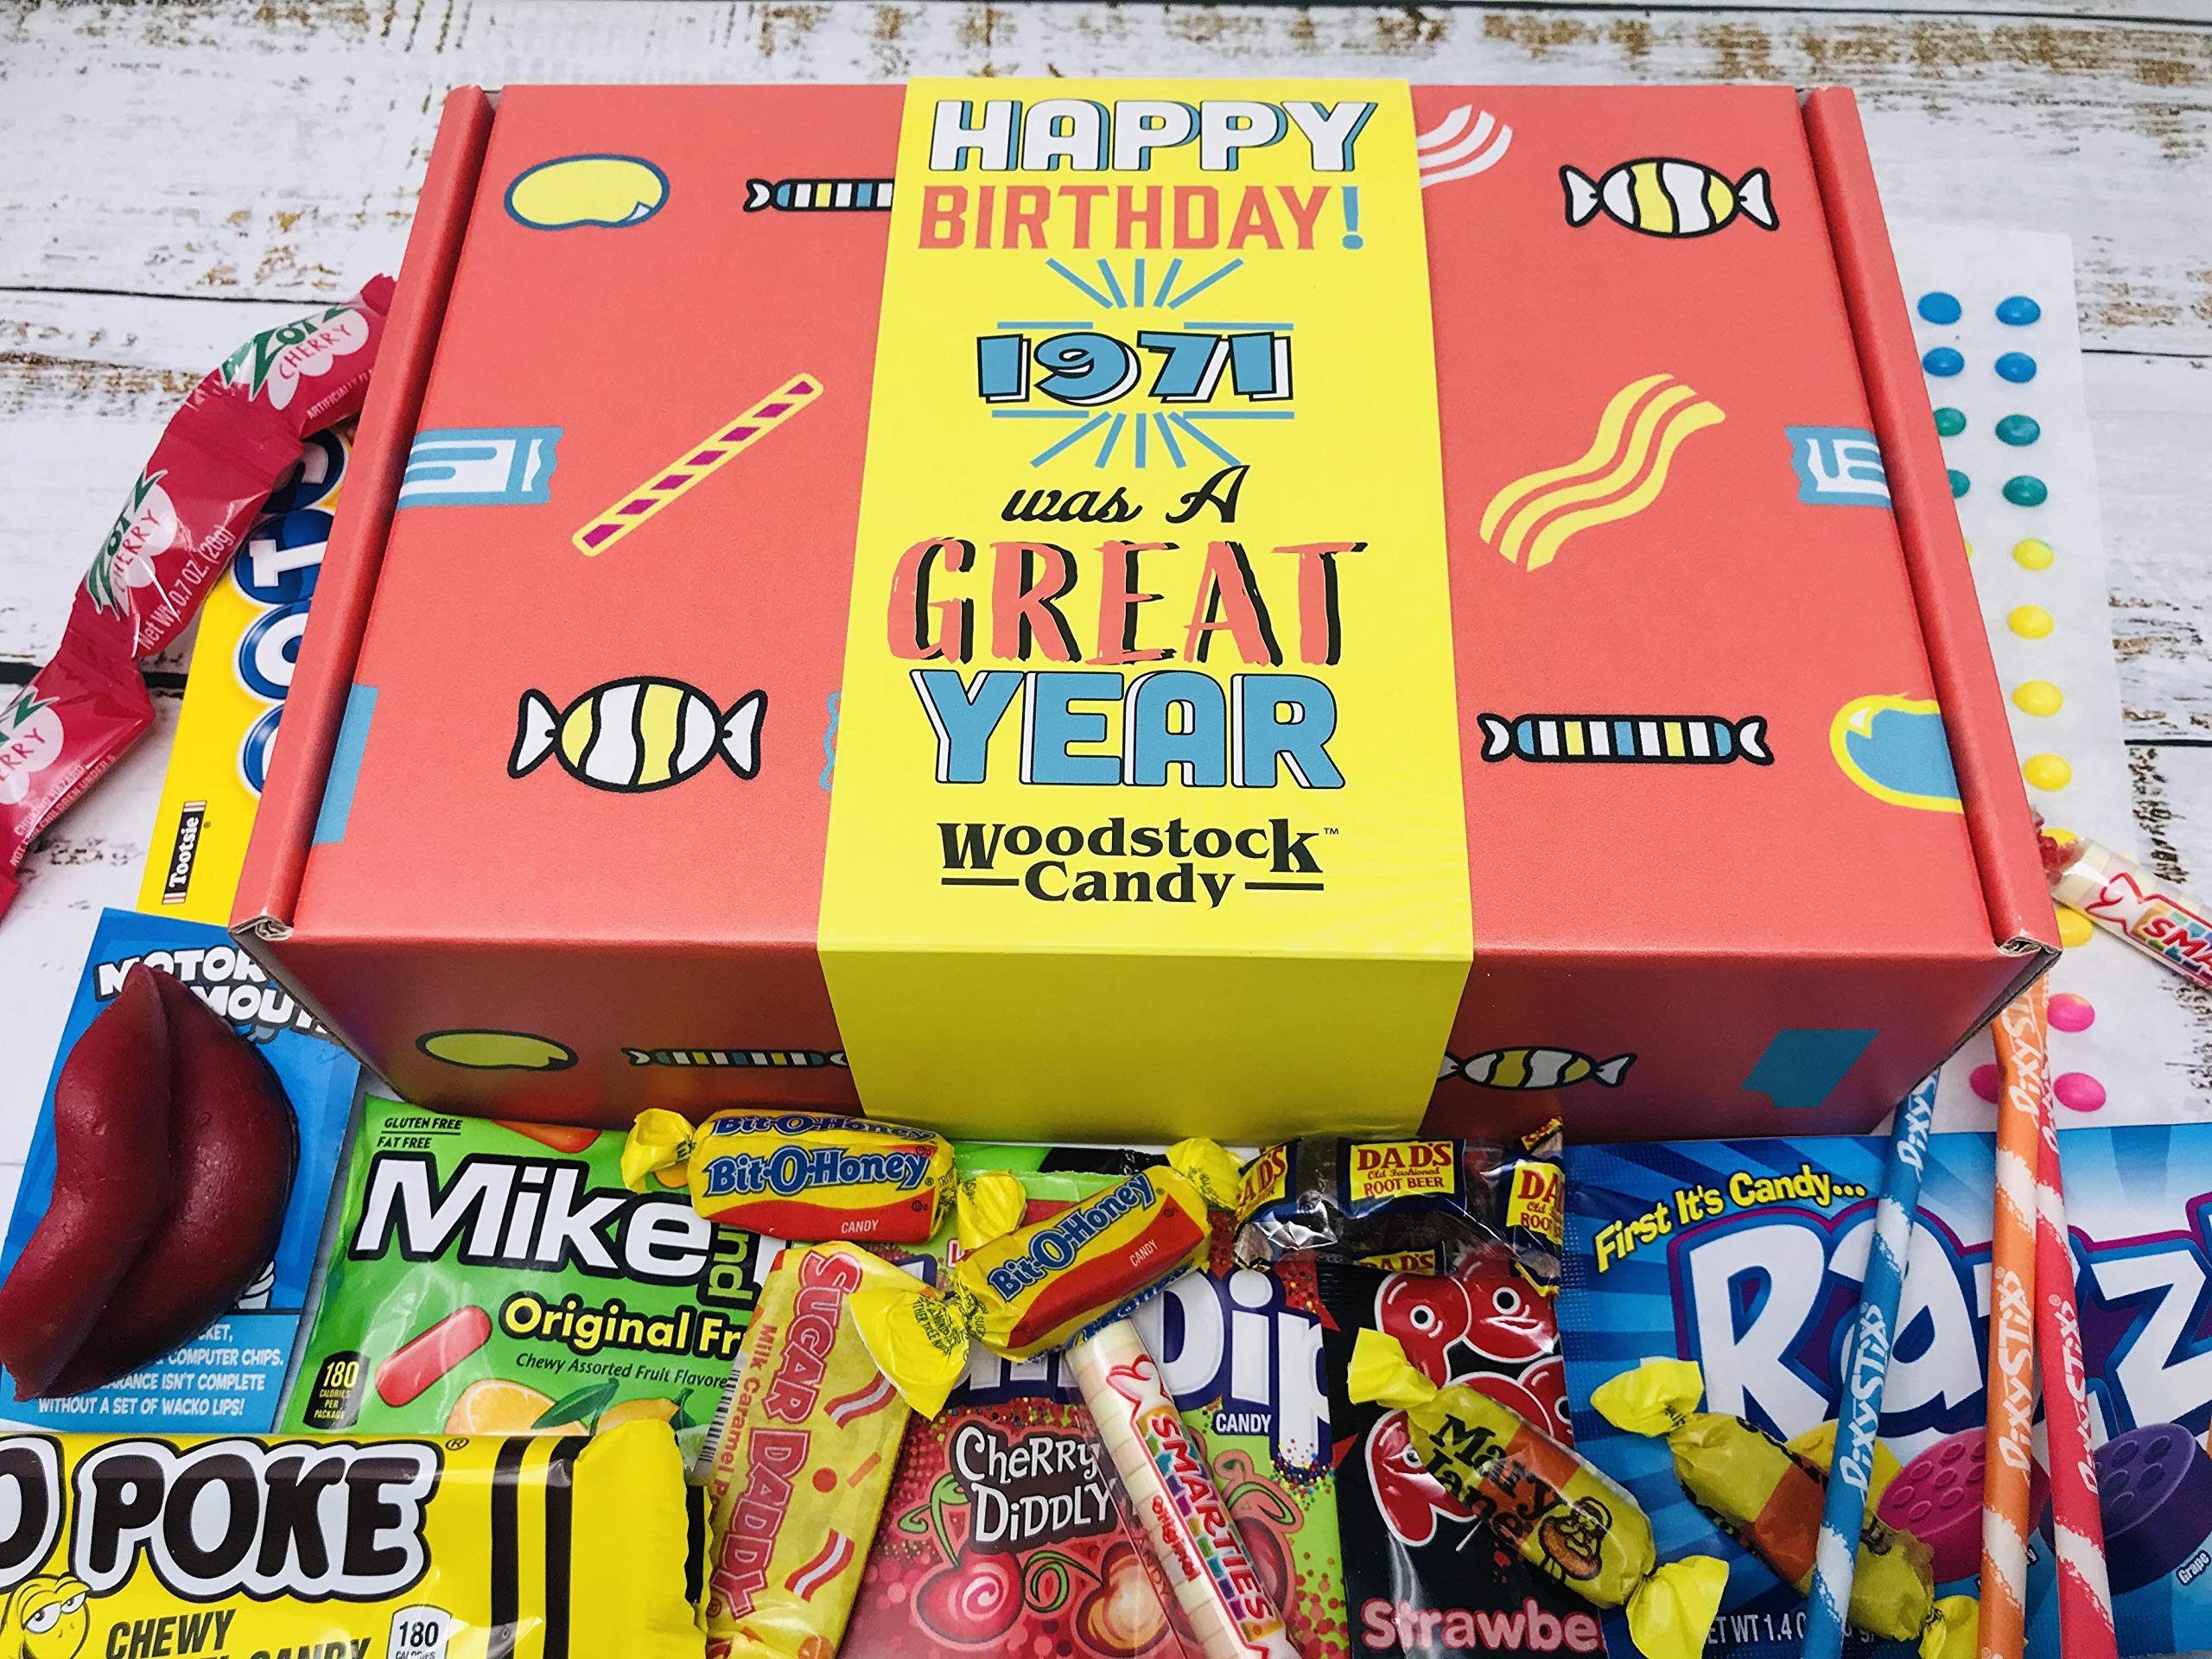 Woodstock Candy ~ Nostalgic 1971 50th Birthday Gift Box of Retro Candy Mix from Childhood Fun Gifts for Men and Women Turning 50 Years Old Born 1971 - Jr